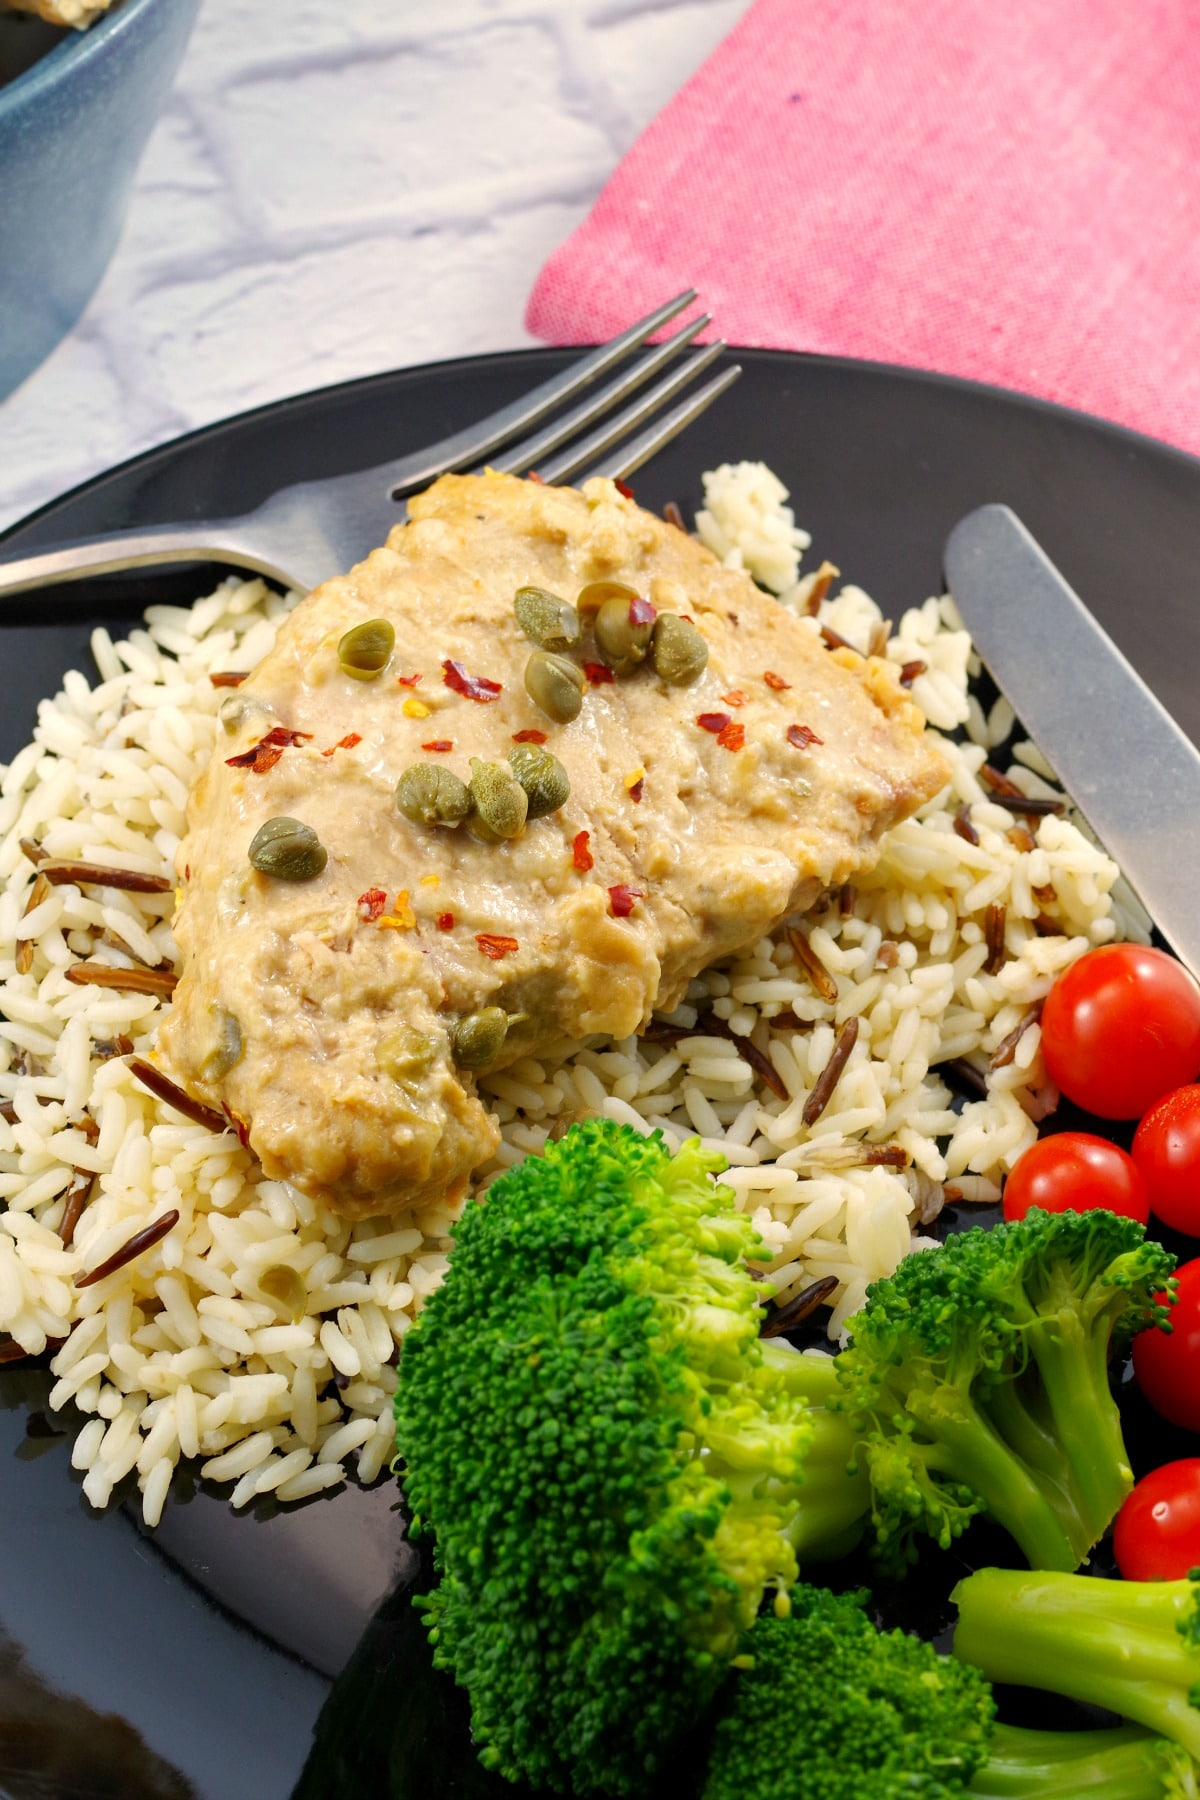 pork with creamy mustard caper sauce on a bed of rice, with salad and tomatoes on the side